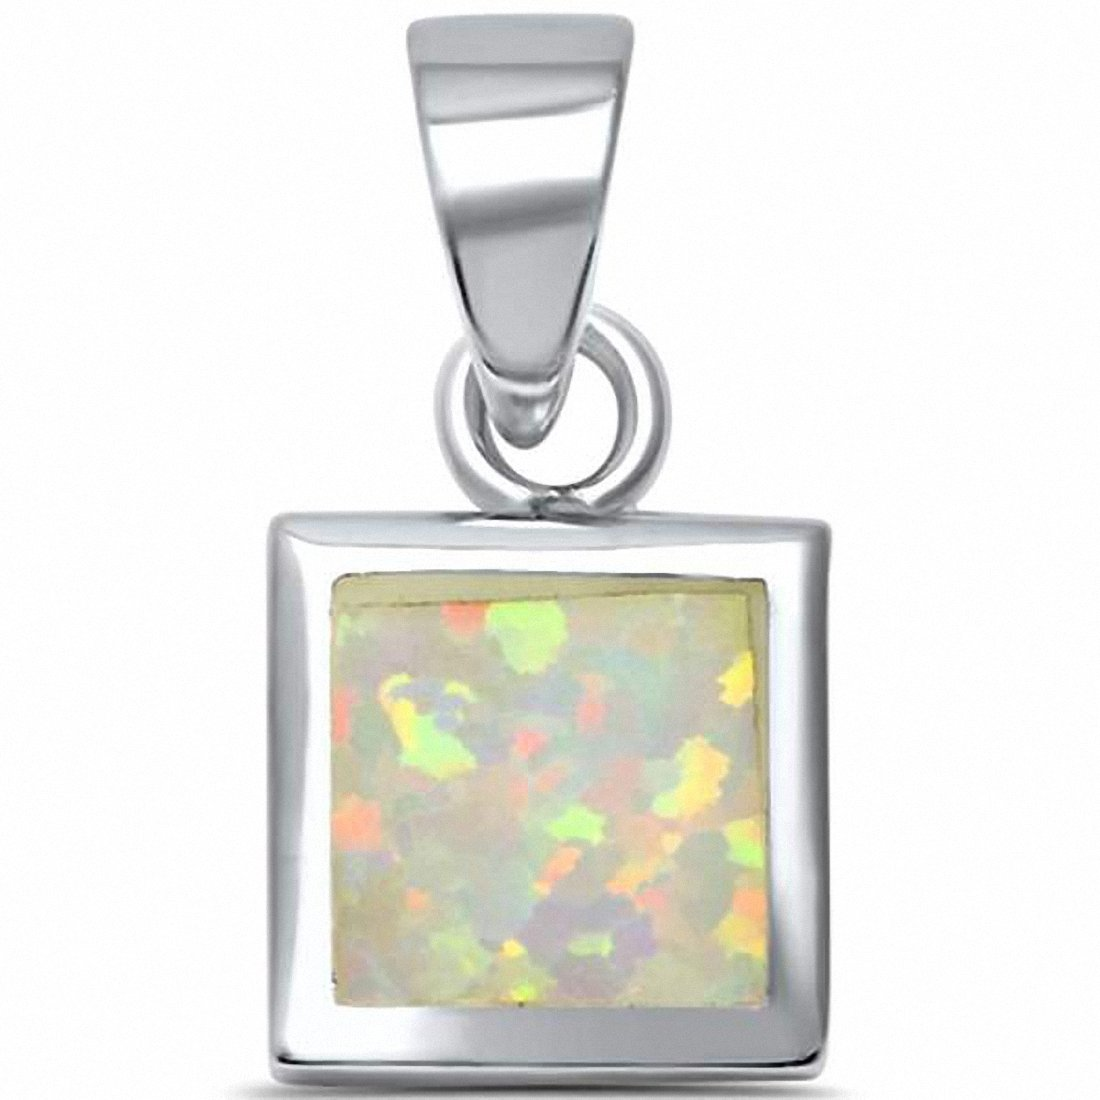 Solitaire Bezel Square Pendant Created Opal 925 Sterling Silver Choose Color